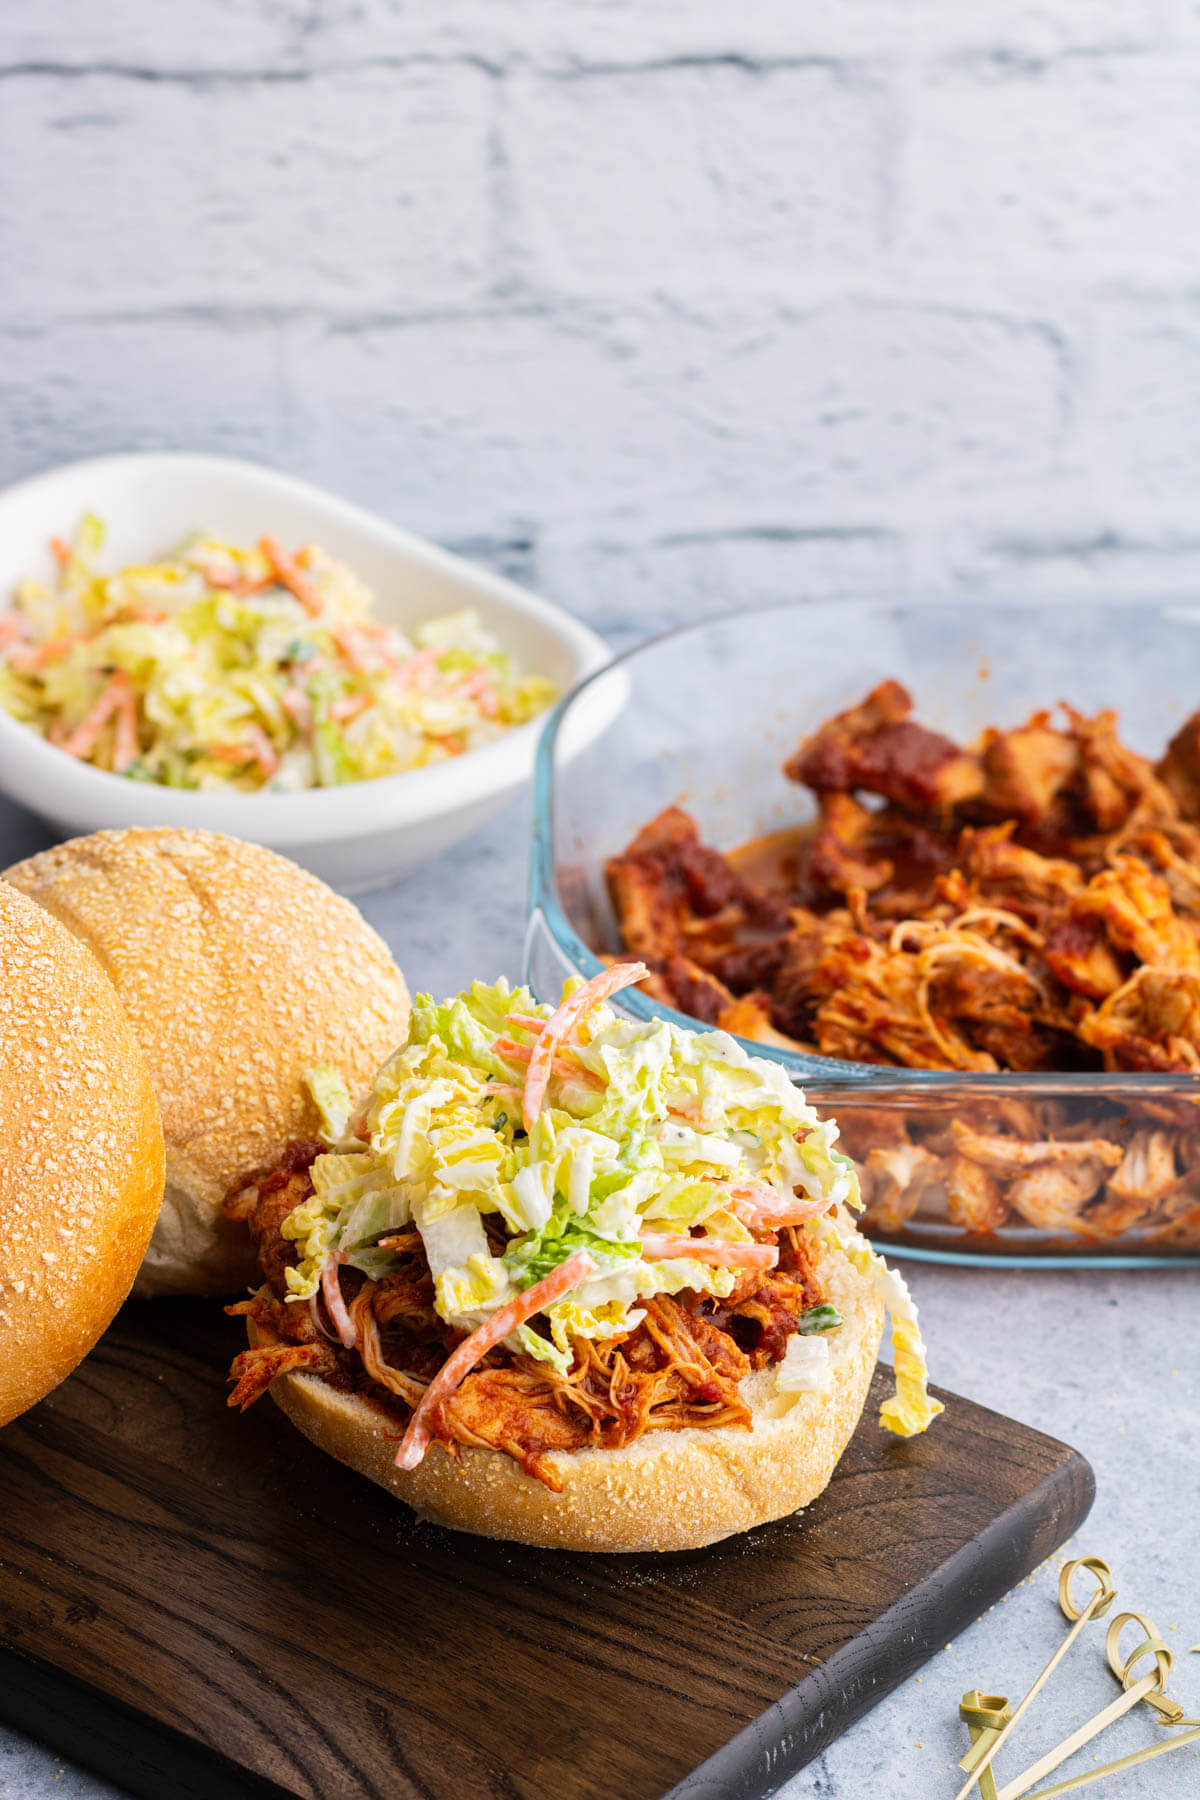 A soft white bun containing BBQ Pulled Chicken and coleslaw surrounded by a glass dish of BBQ Pulled Chicken, coleslaw, and buns.